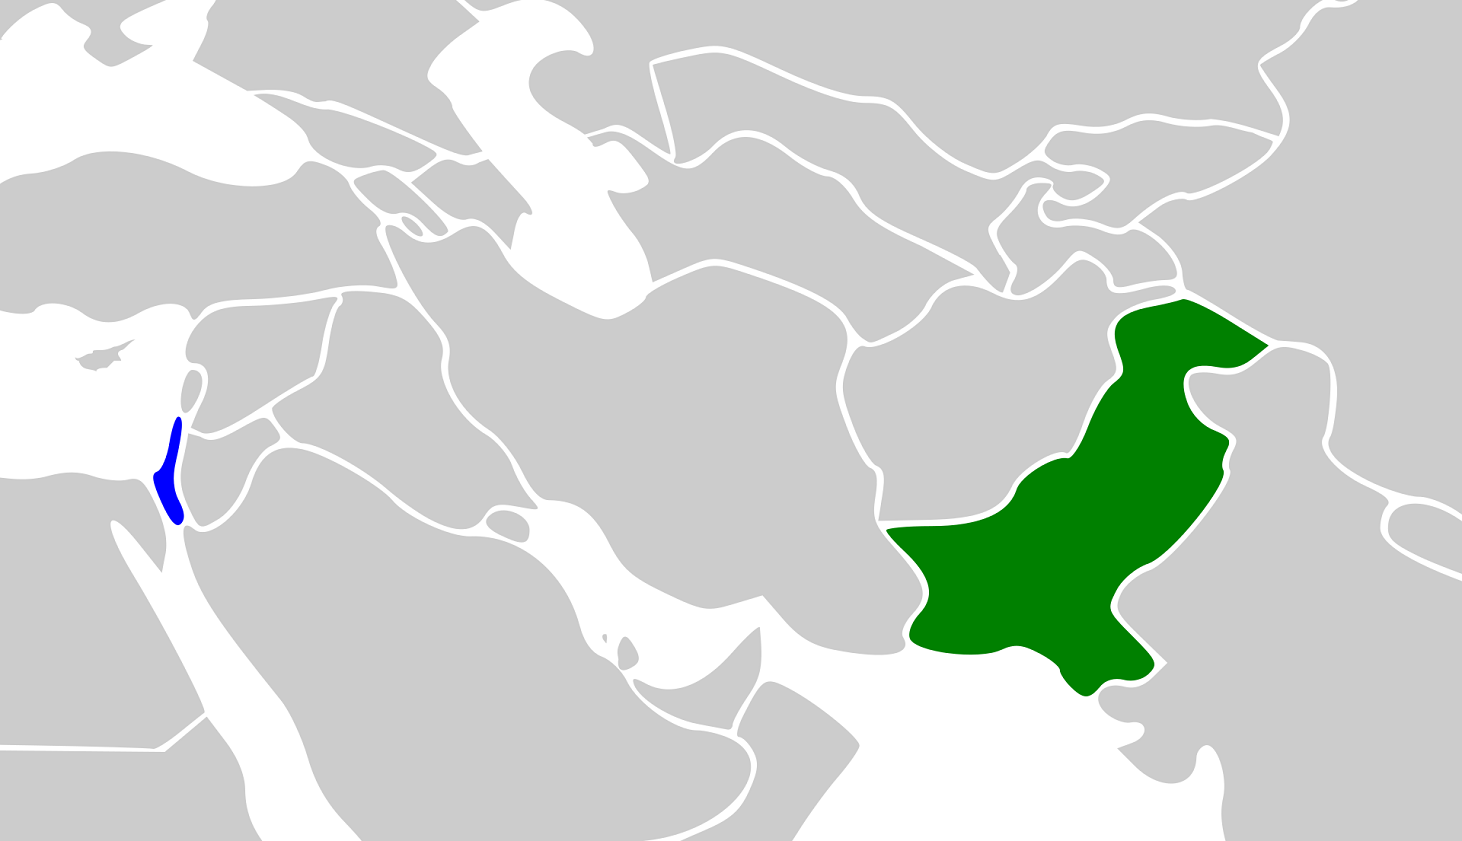 -israel_pakistan_locator2-svg